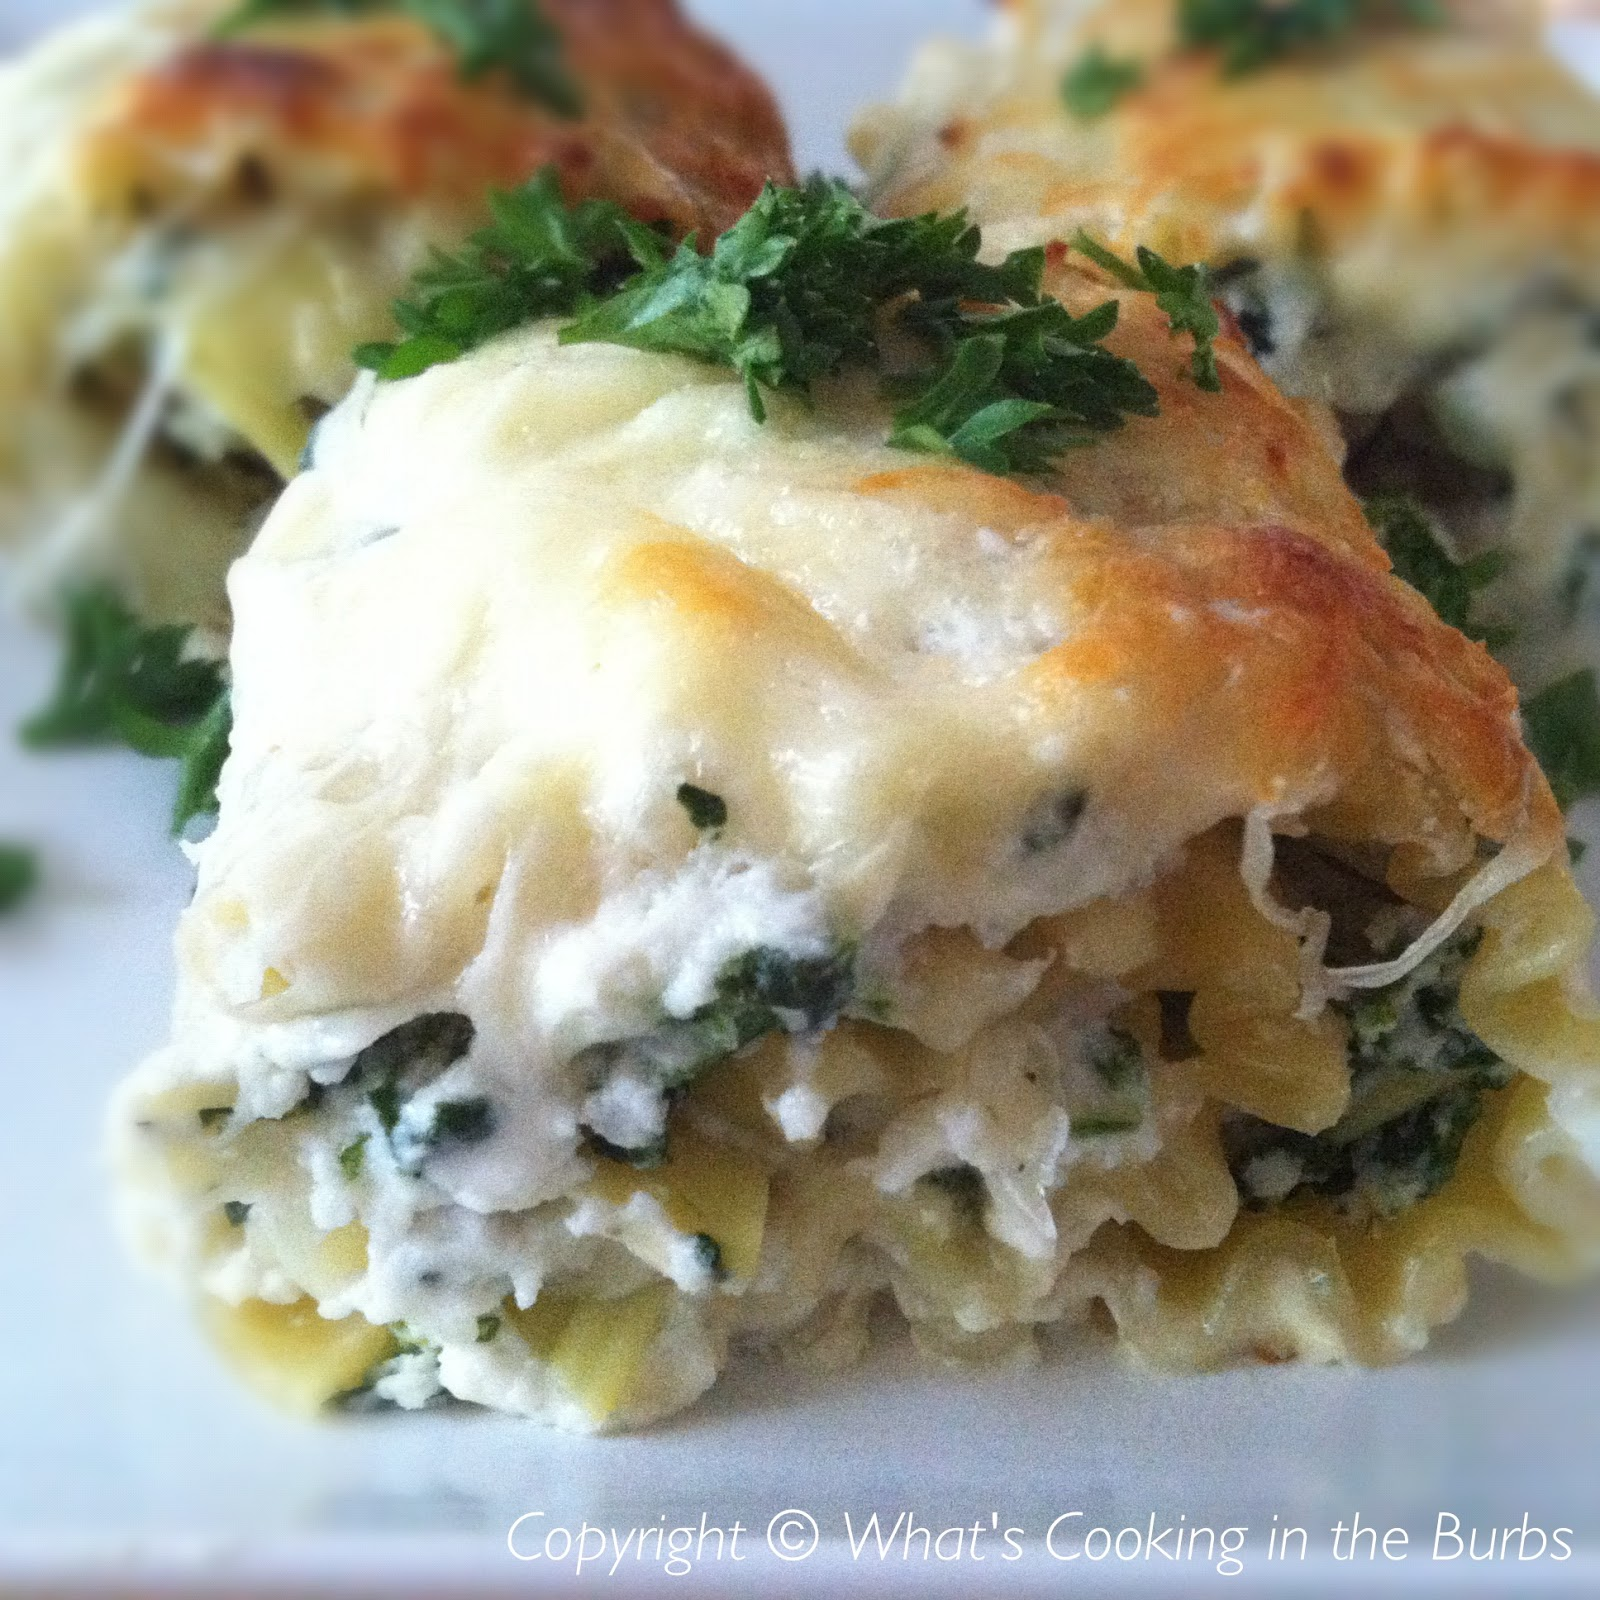 ... the Burbs: Spinach Artichoke Lasagna Roll Ups with Cream Cheese Sauce